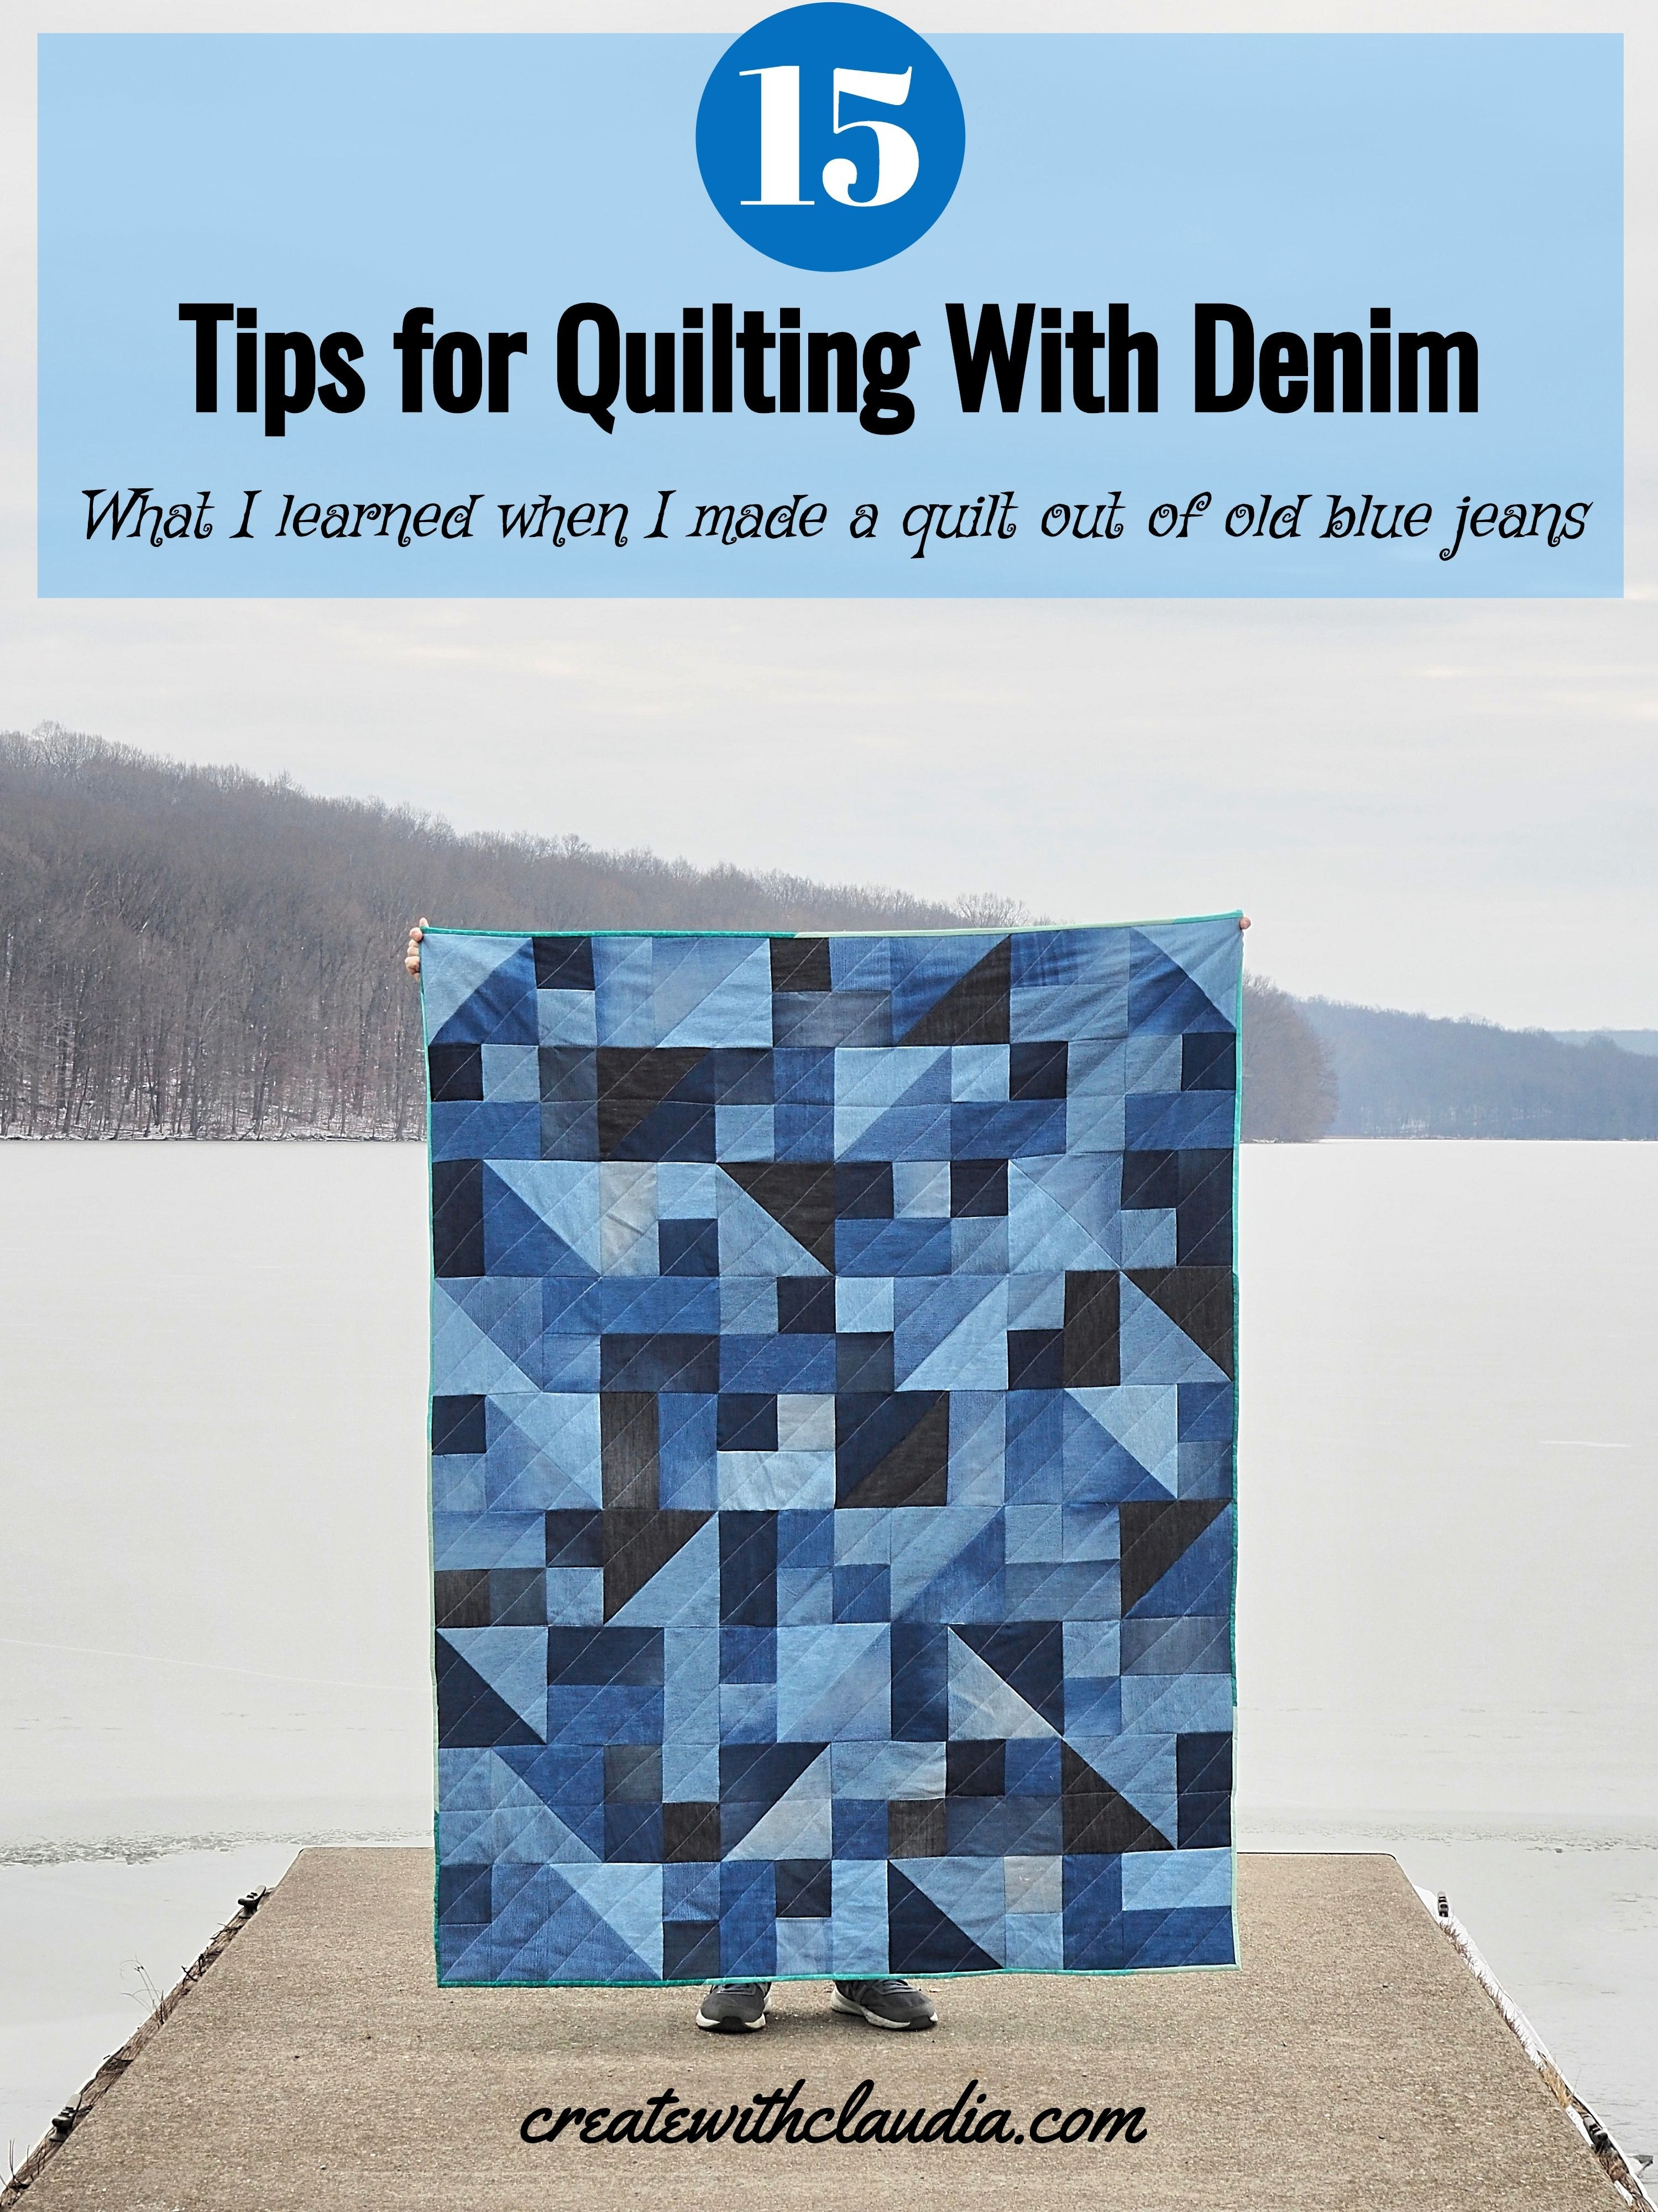 15 Tips for Quilting with Denim